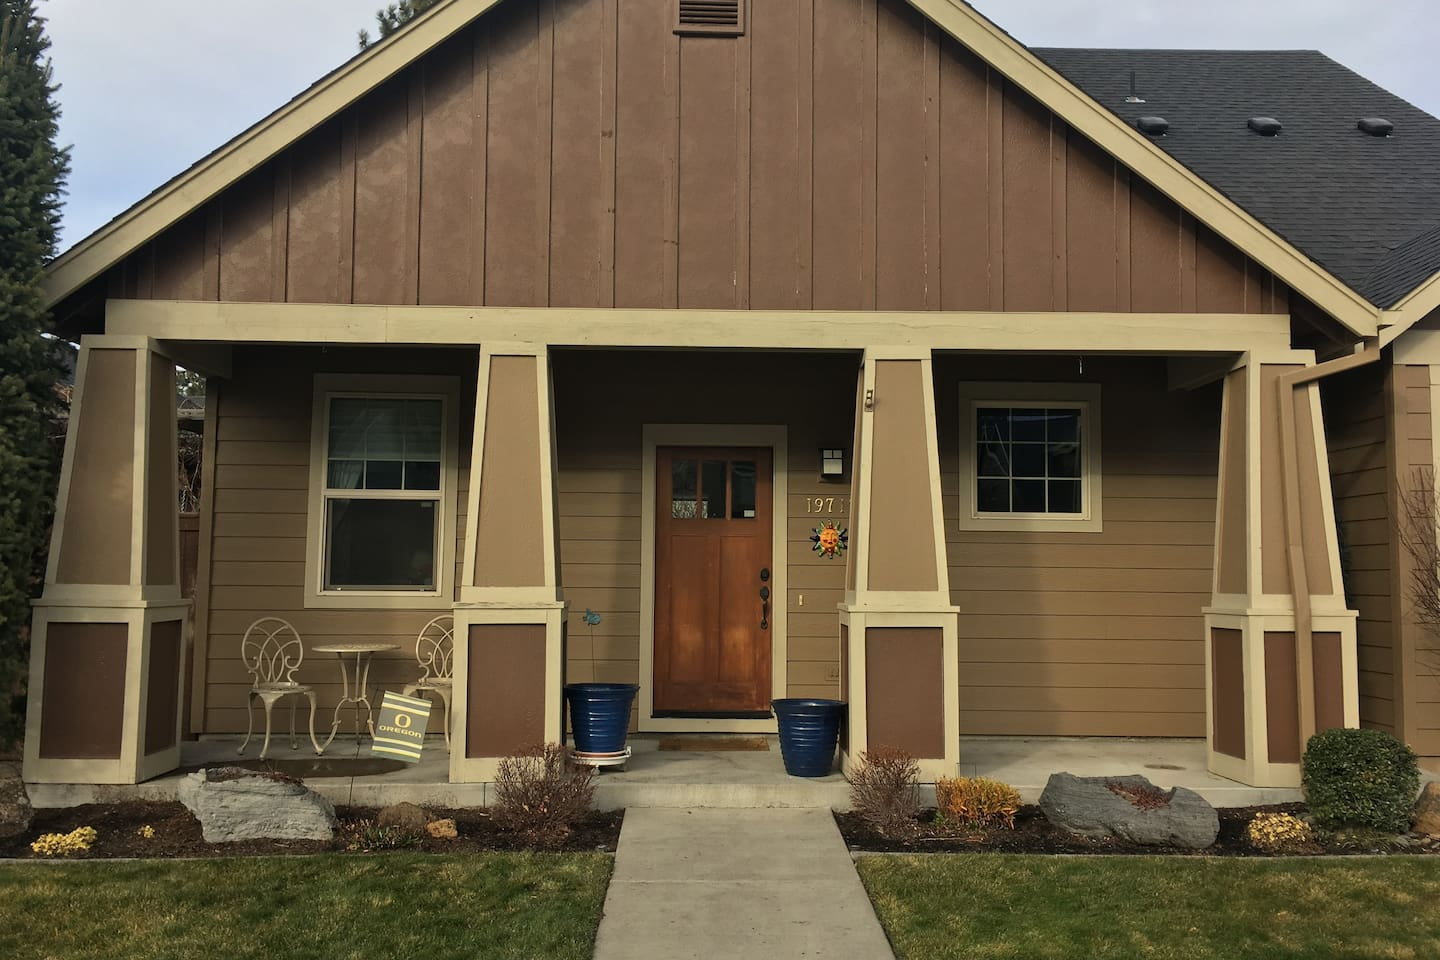 Family friendly, recently remodeled 4 bedroom/2.5 bath home in beautiful neighborhood